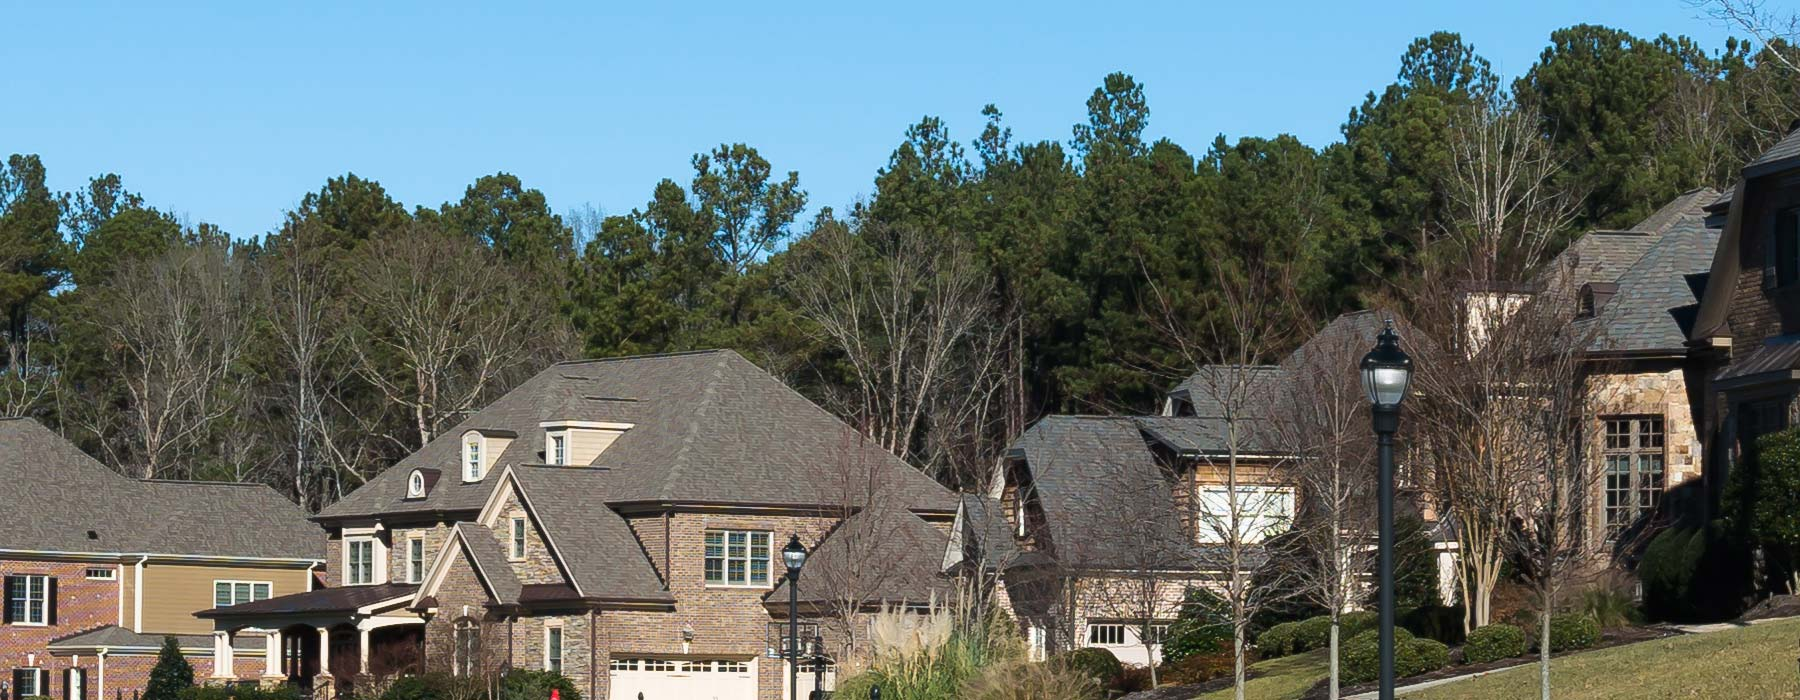 Neighborhoods subdivisions in hillsborough nc for Hillsborough house